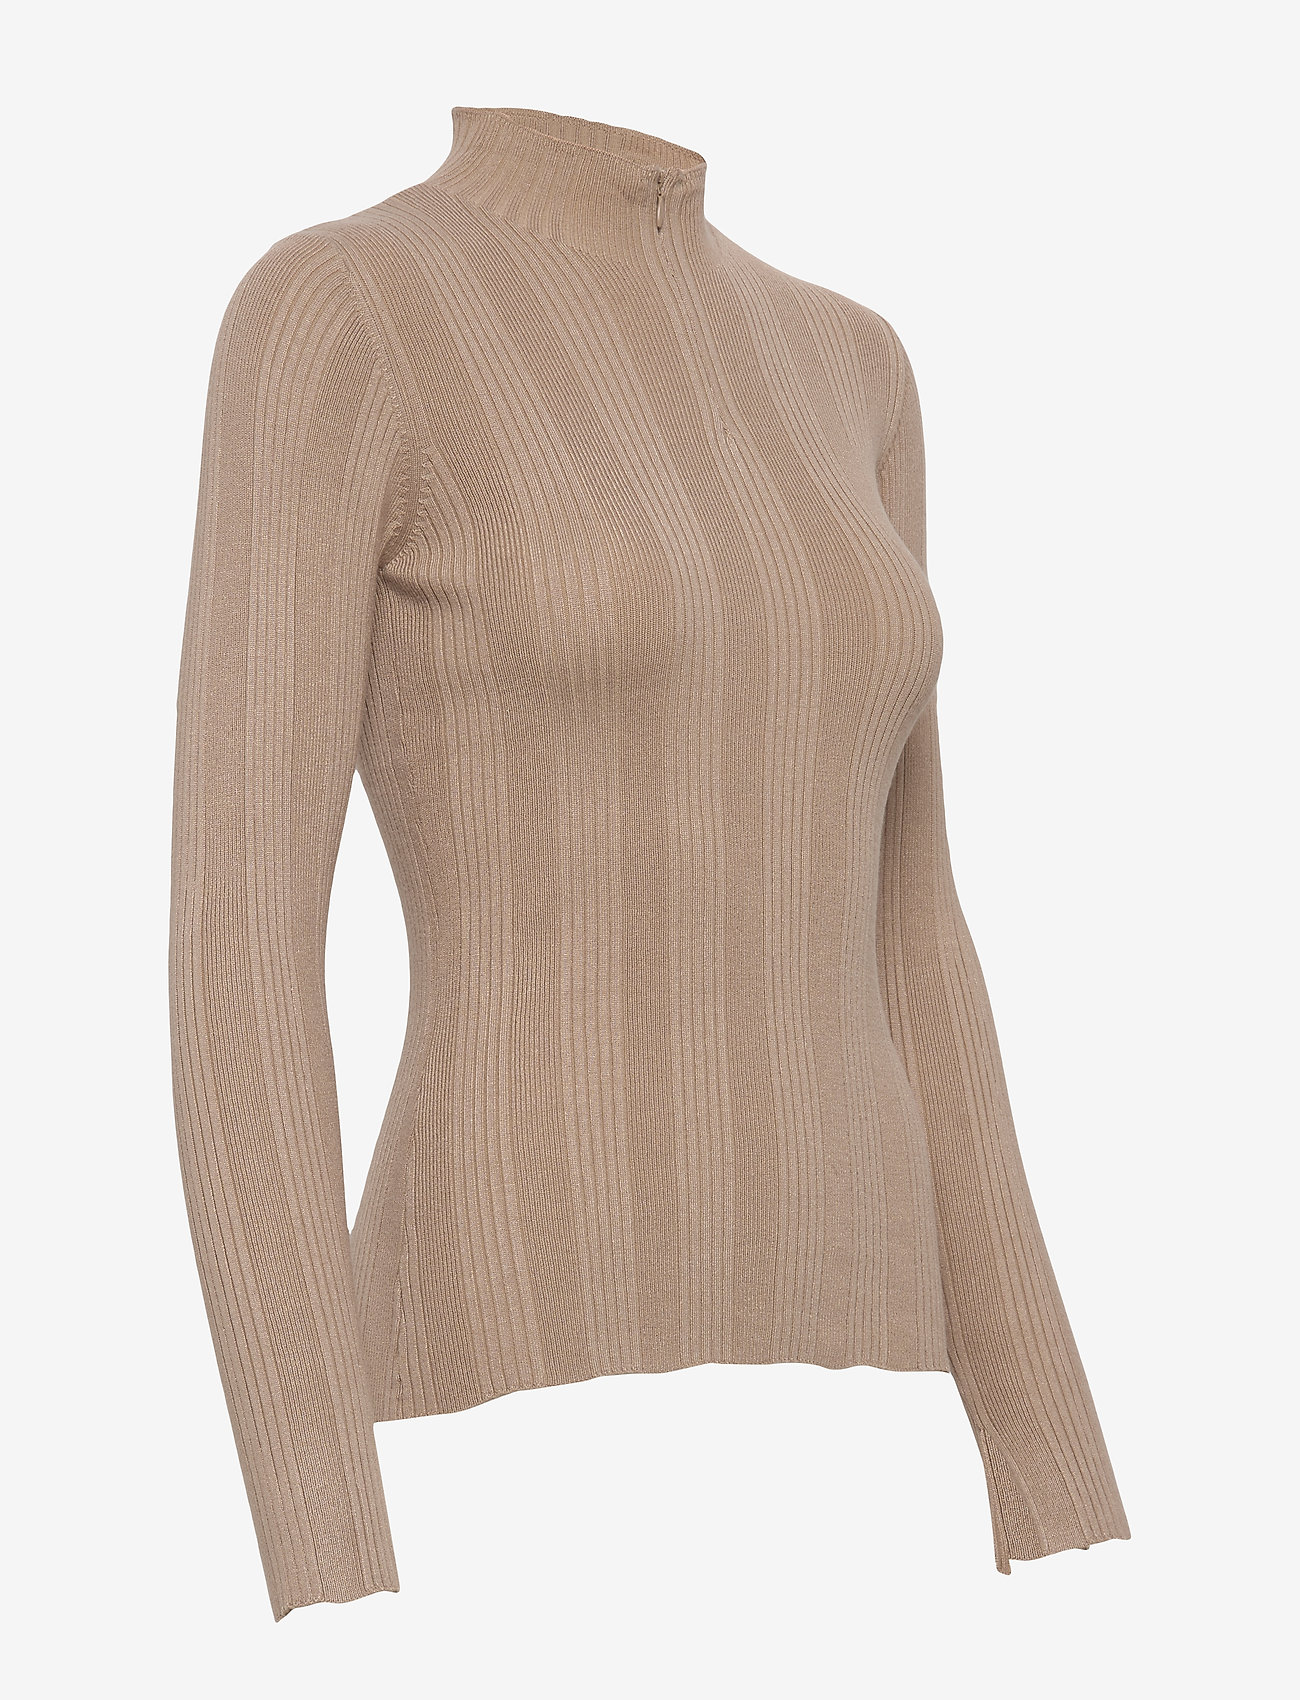 Sole Sweater (Camel) (880.75 kr) - Camilla Pihl